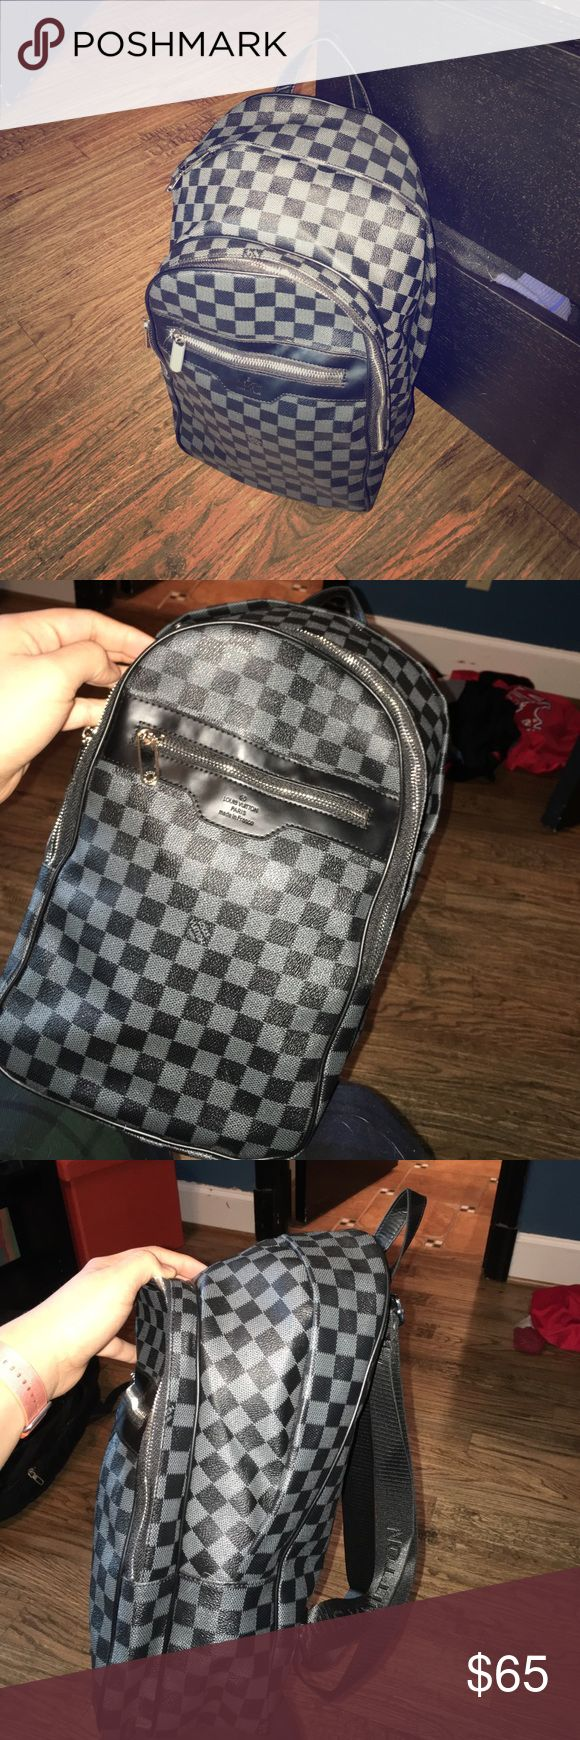 Louis vuitton michael backpack bb damier graphite this bag is a very good petite backpack style